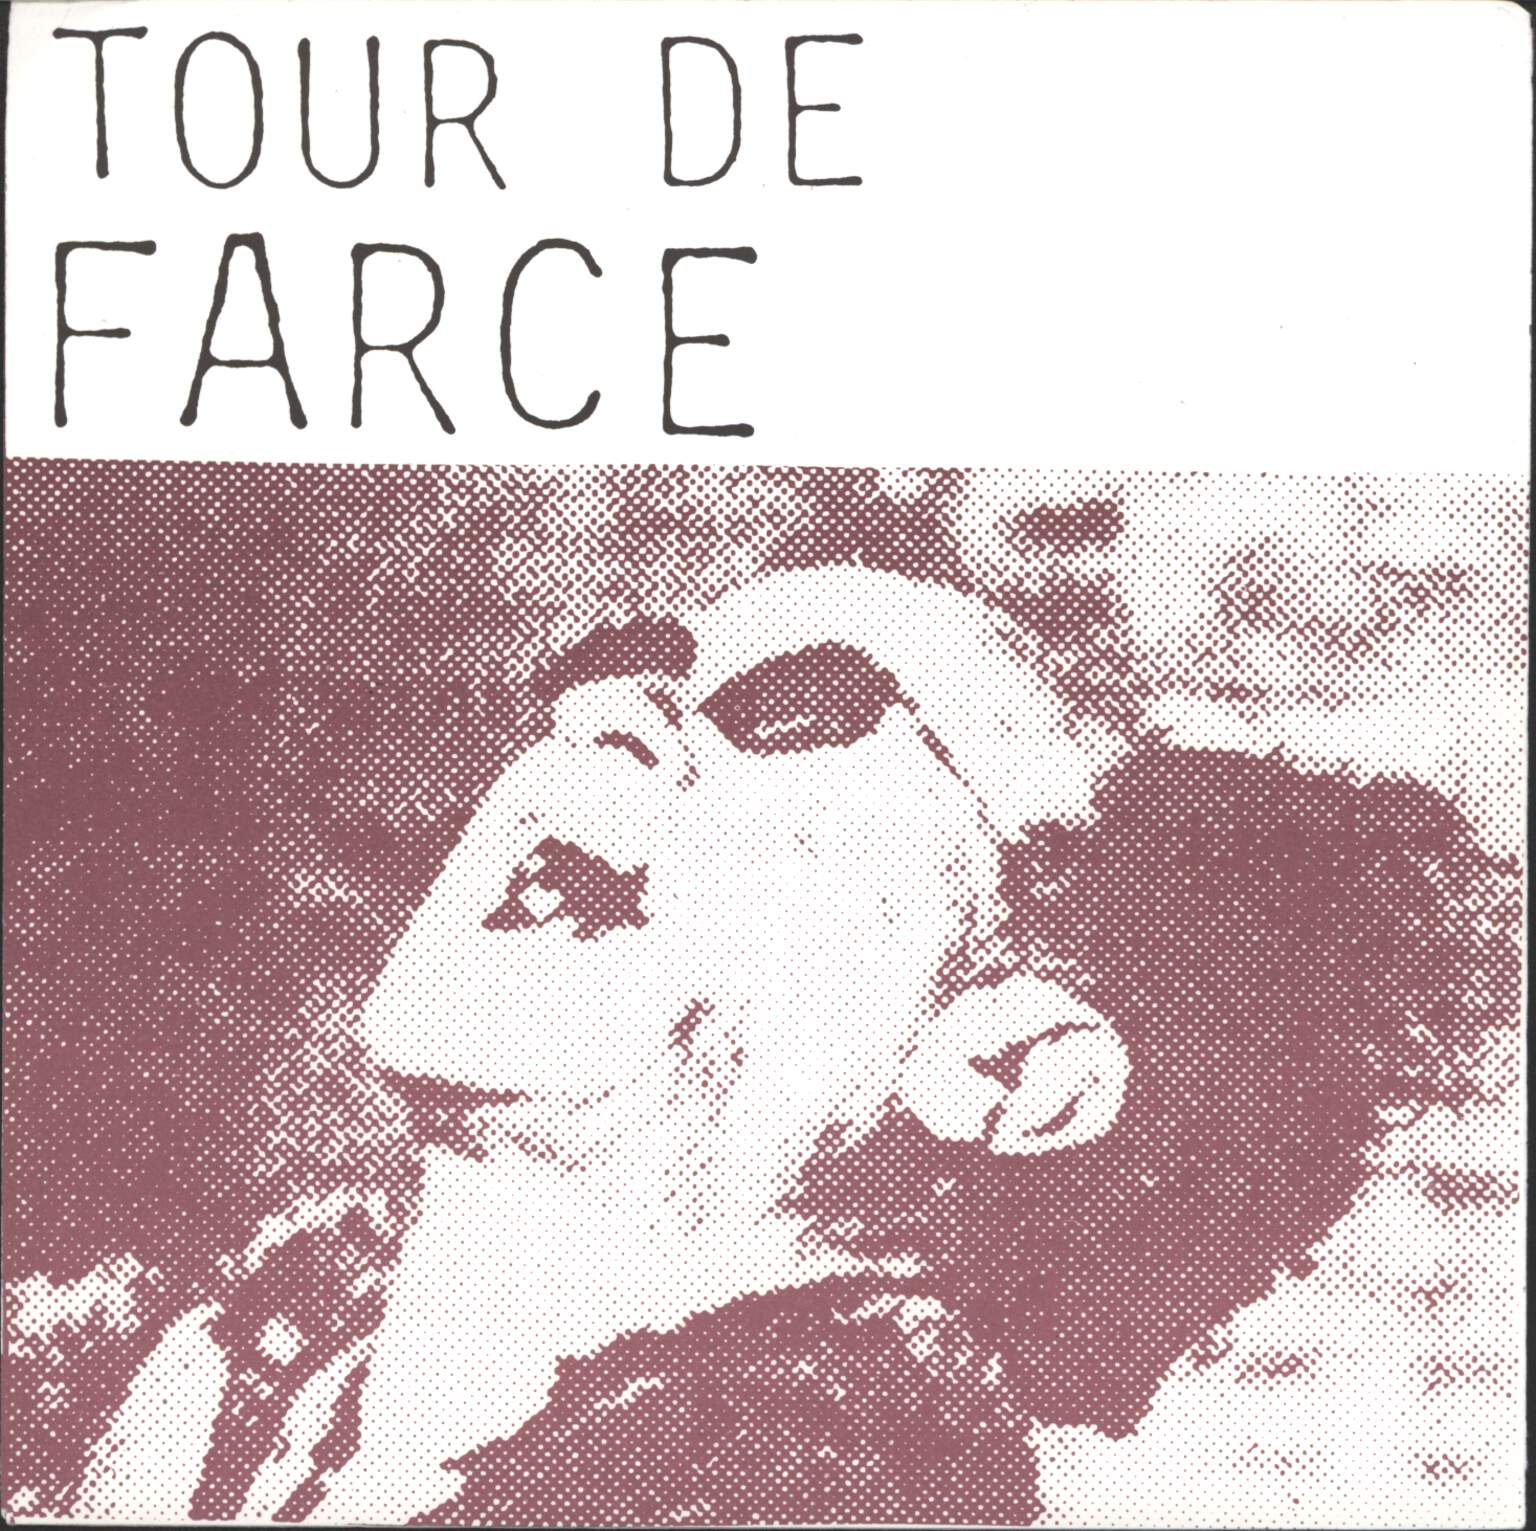 "Various: Tour De Farce, 7"" Single (Vinyl)"